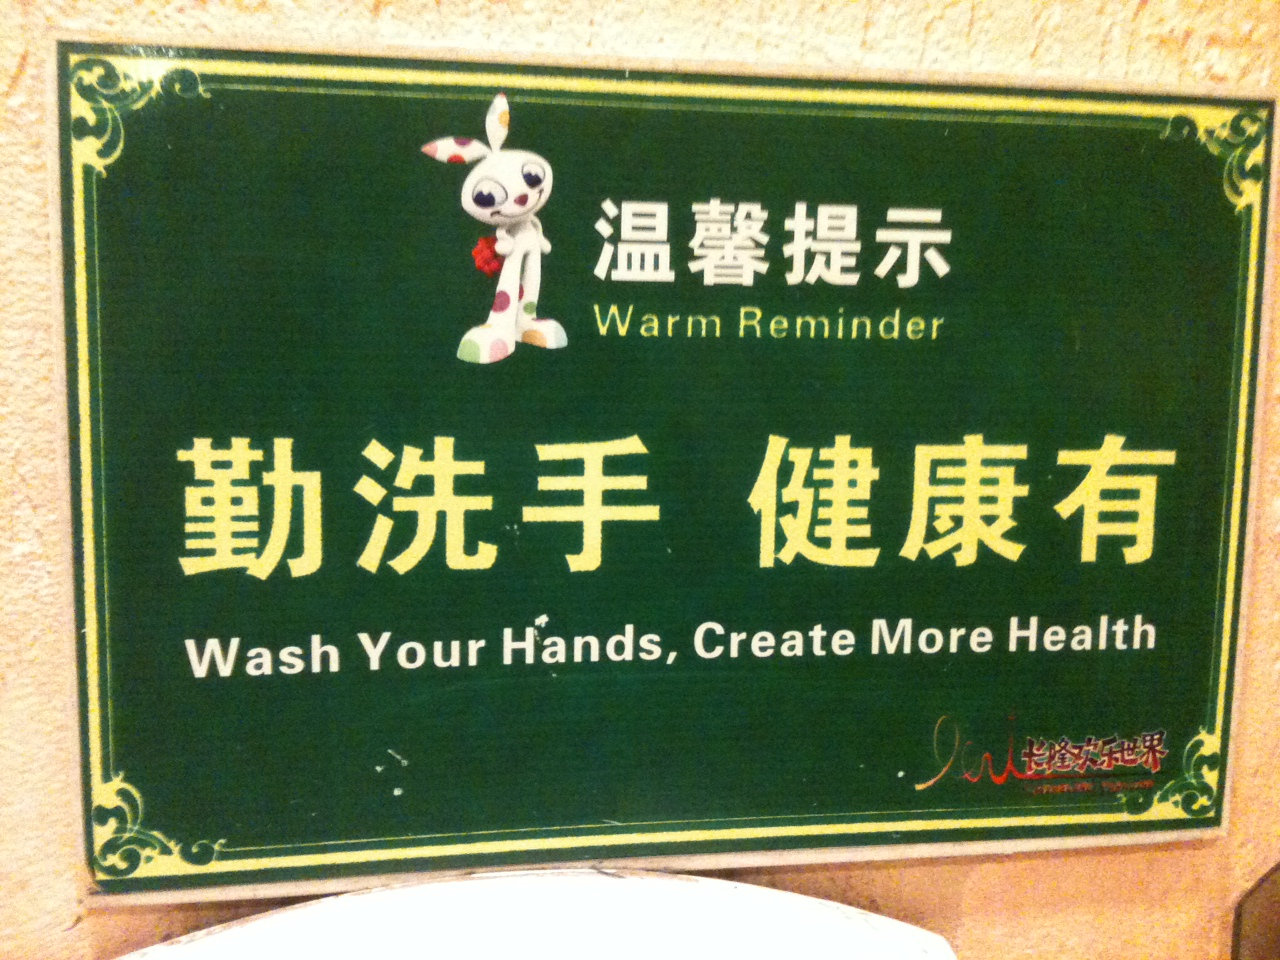 Why you should wash your hands after using the bathroom - Why You Should Always Wash Your Hands After Using The Bathroom A Friendly Reminder From The Chinese